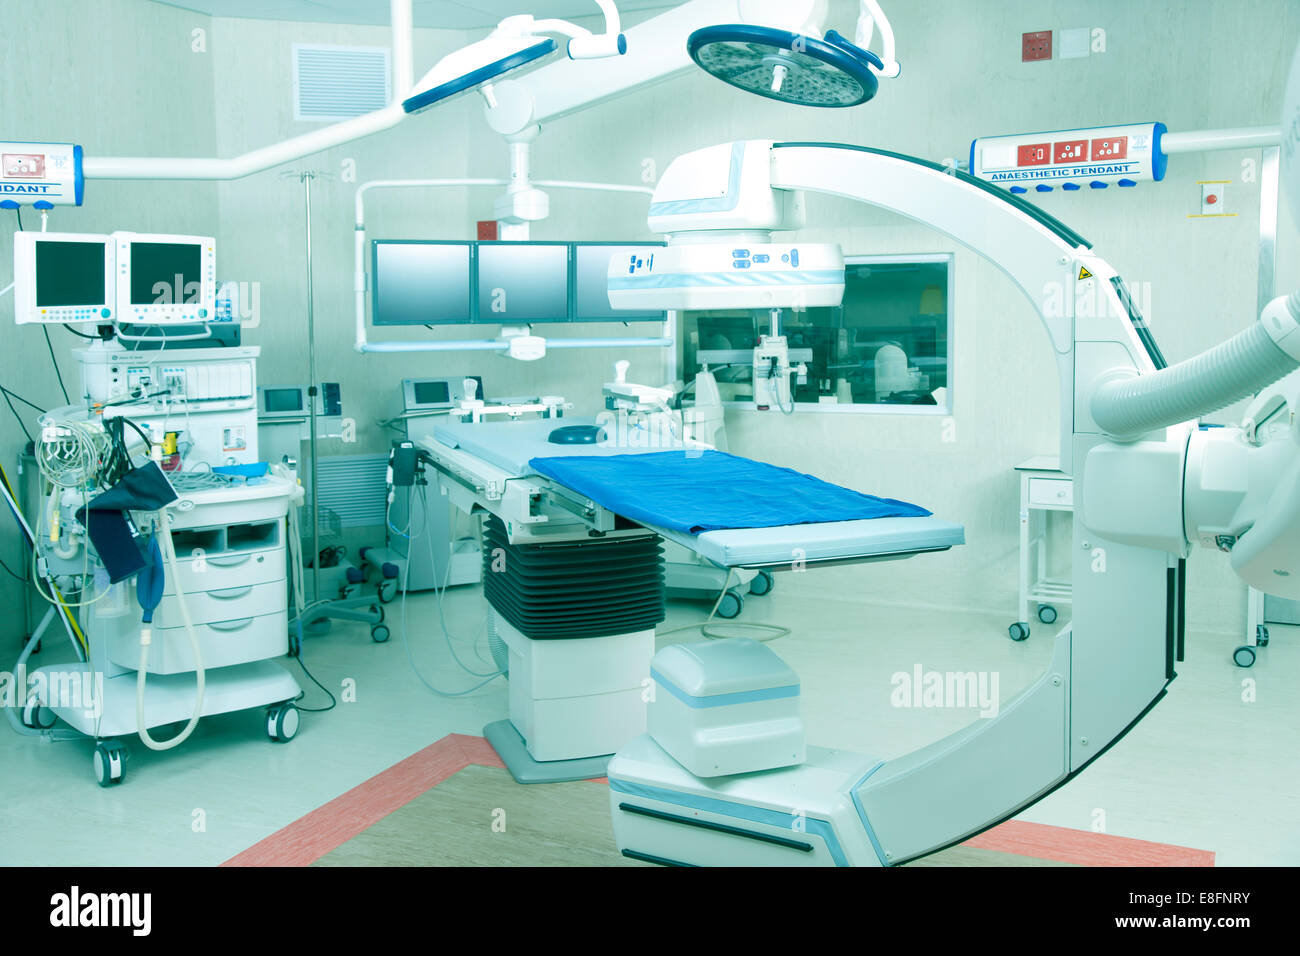 Operating room in hospital with robotic imaging system - Stock Image